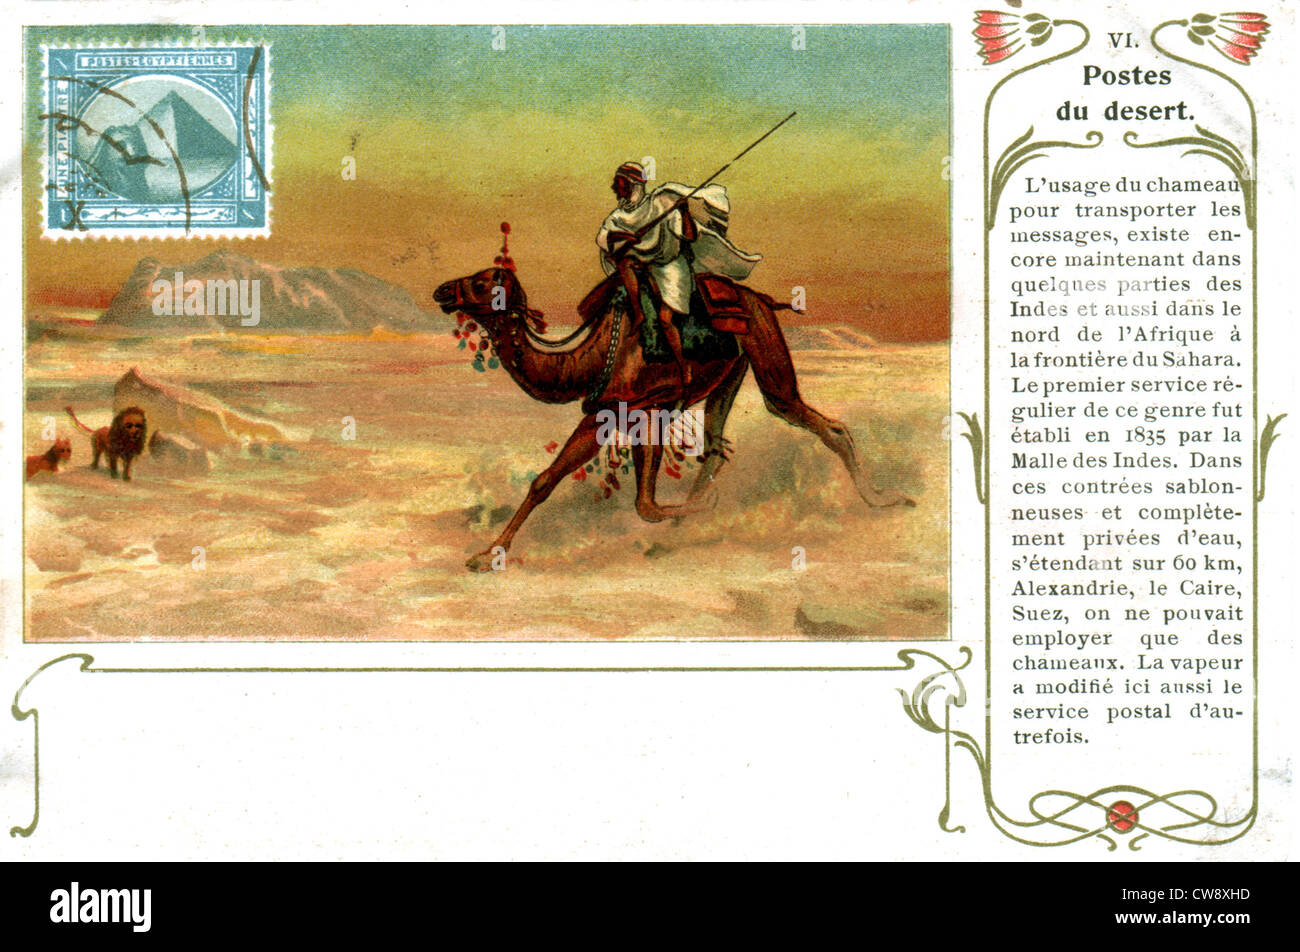 The desert postal service in the 19th century Stock Photo